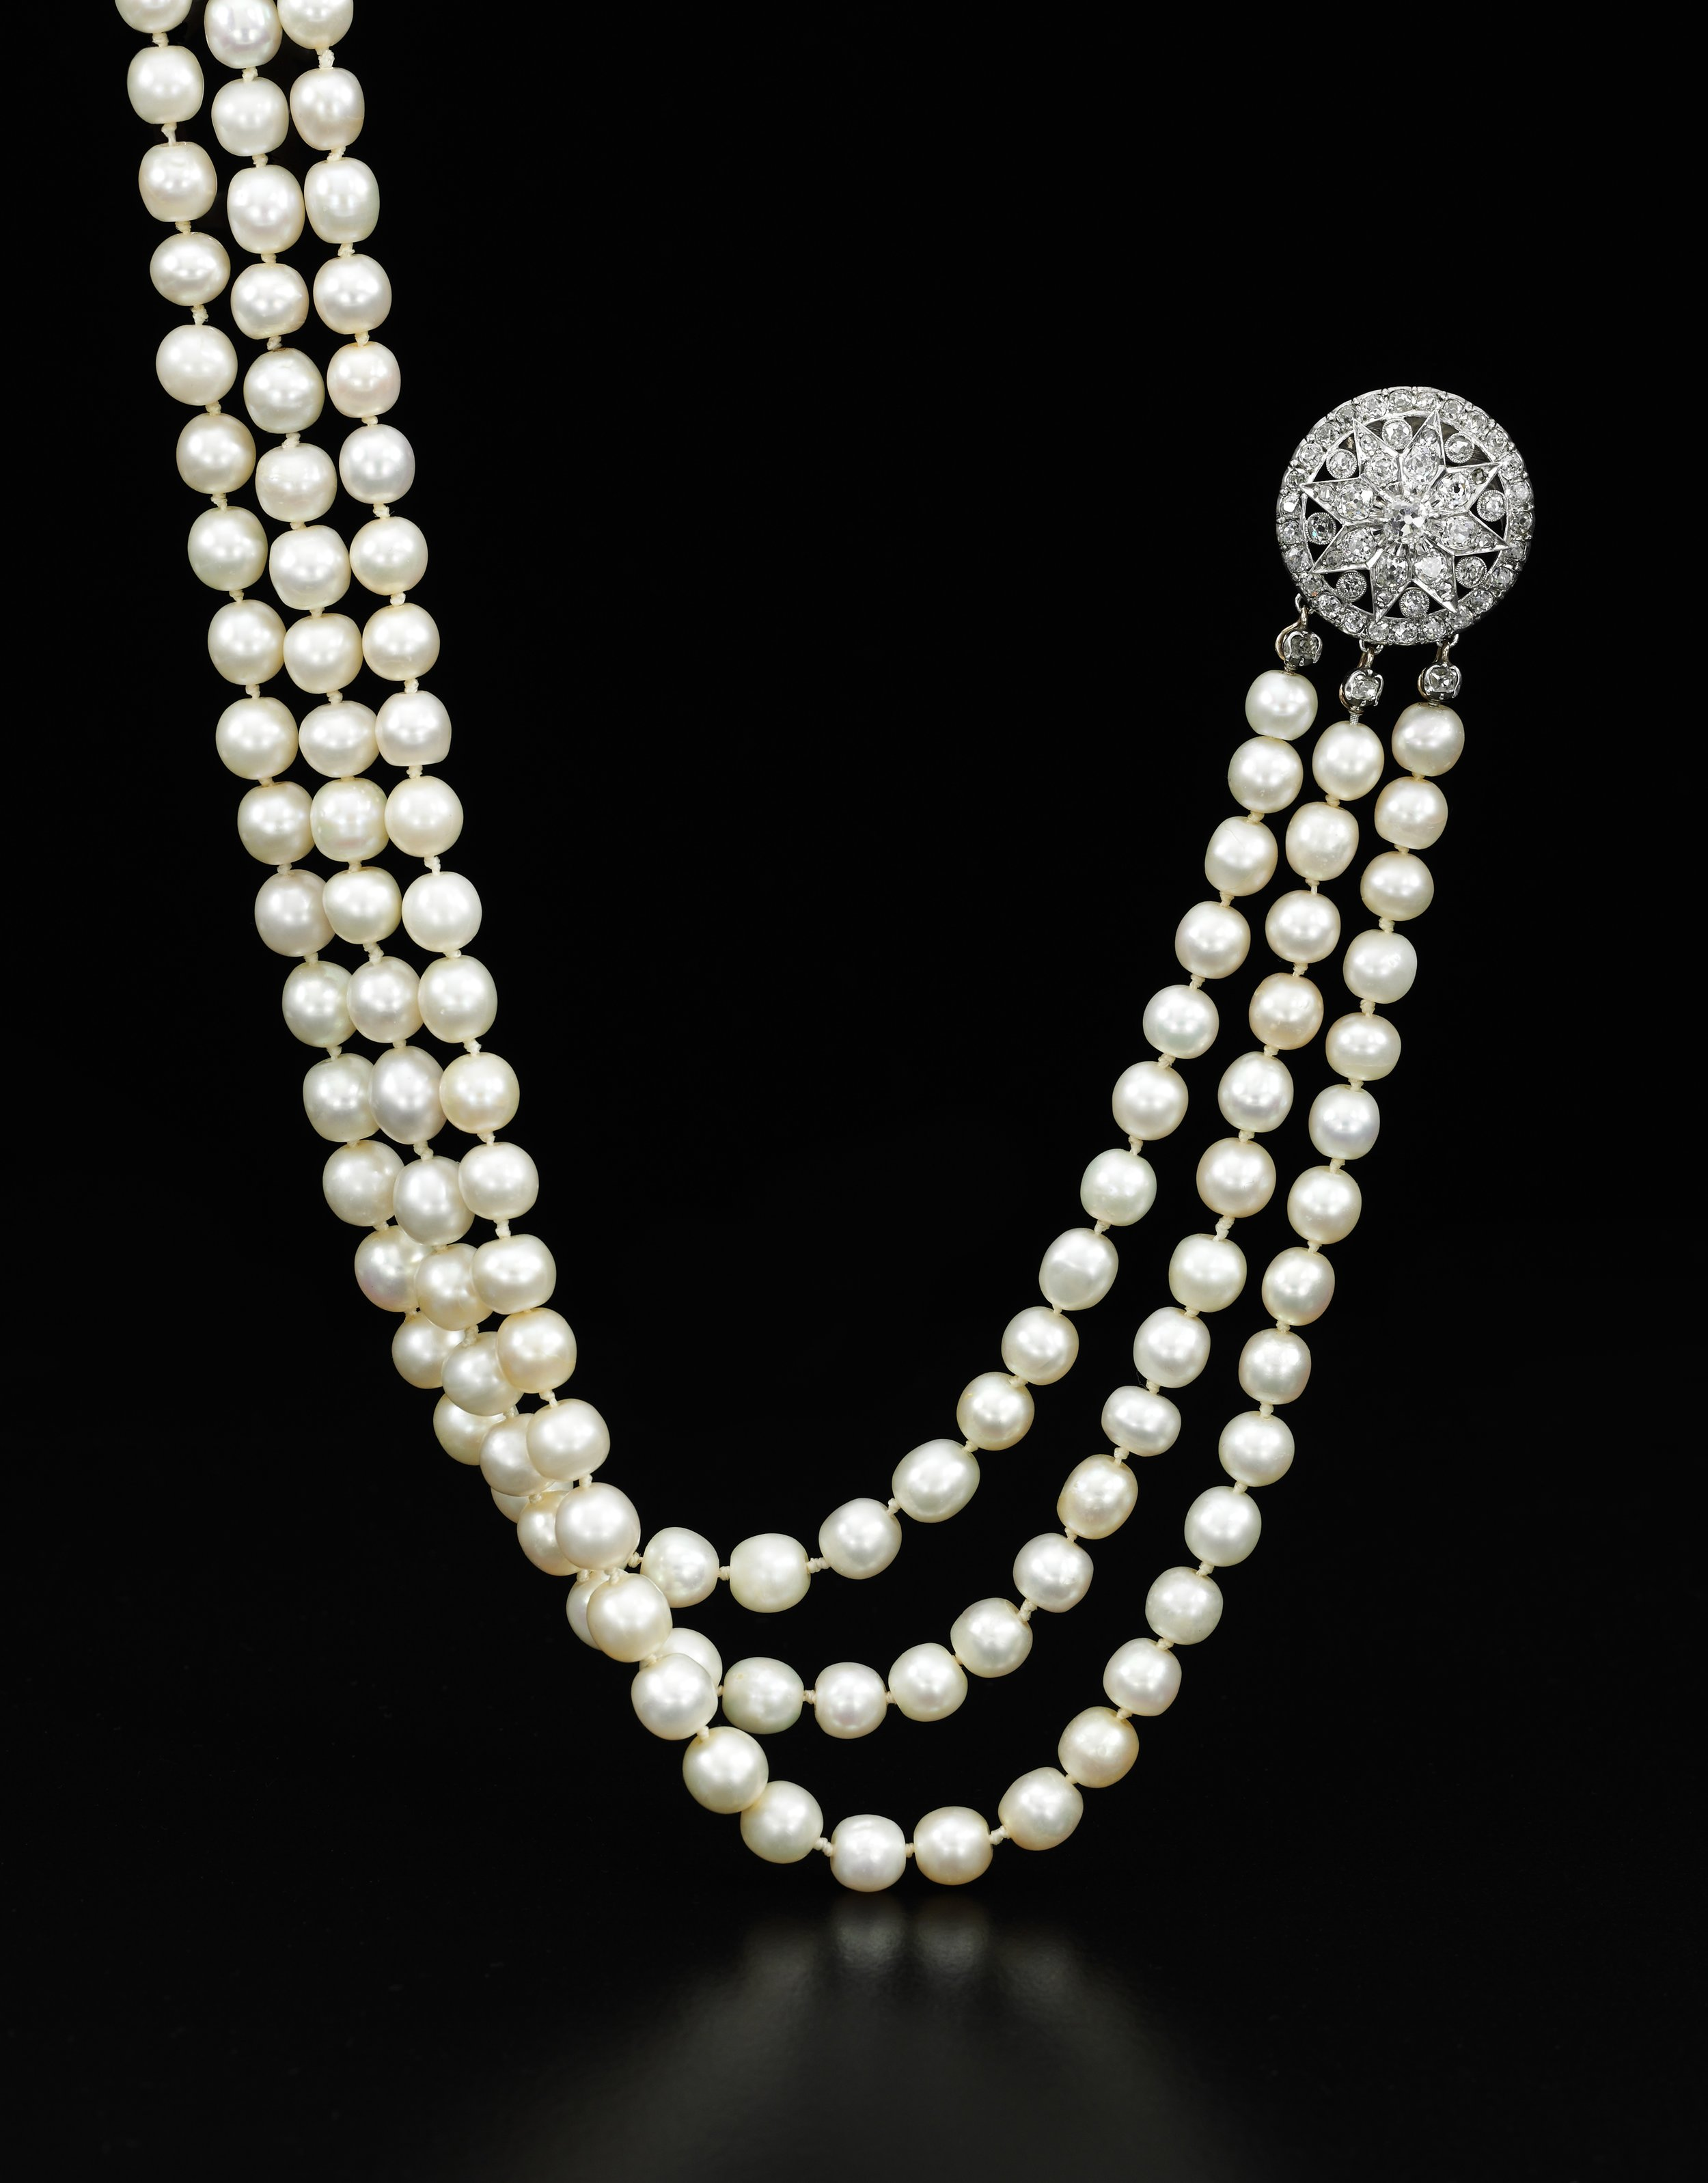 A natural pearl and diamond necklace - Royal Jewels from the Bourbon Parma Family - Sotheby's November 2018.